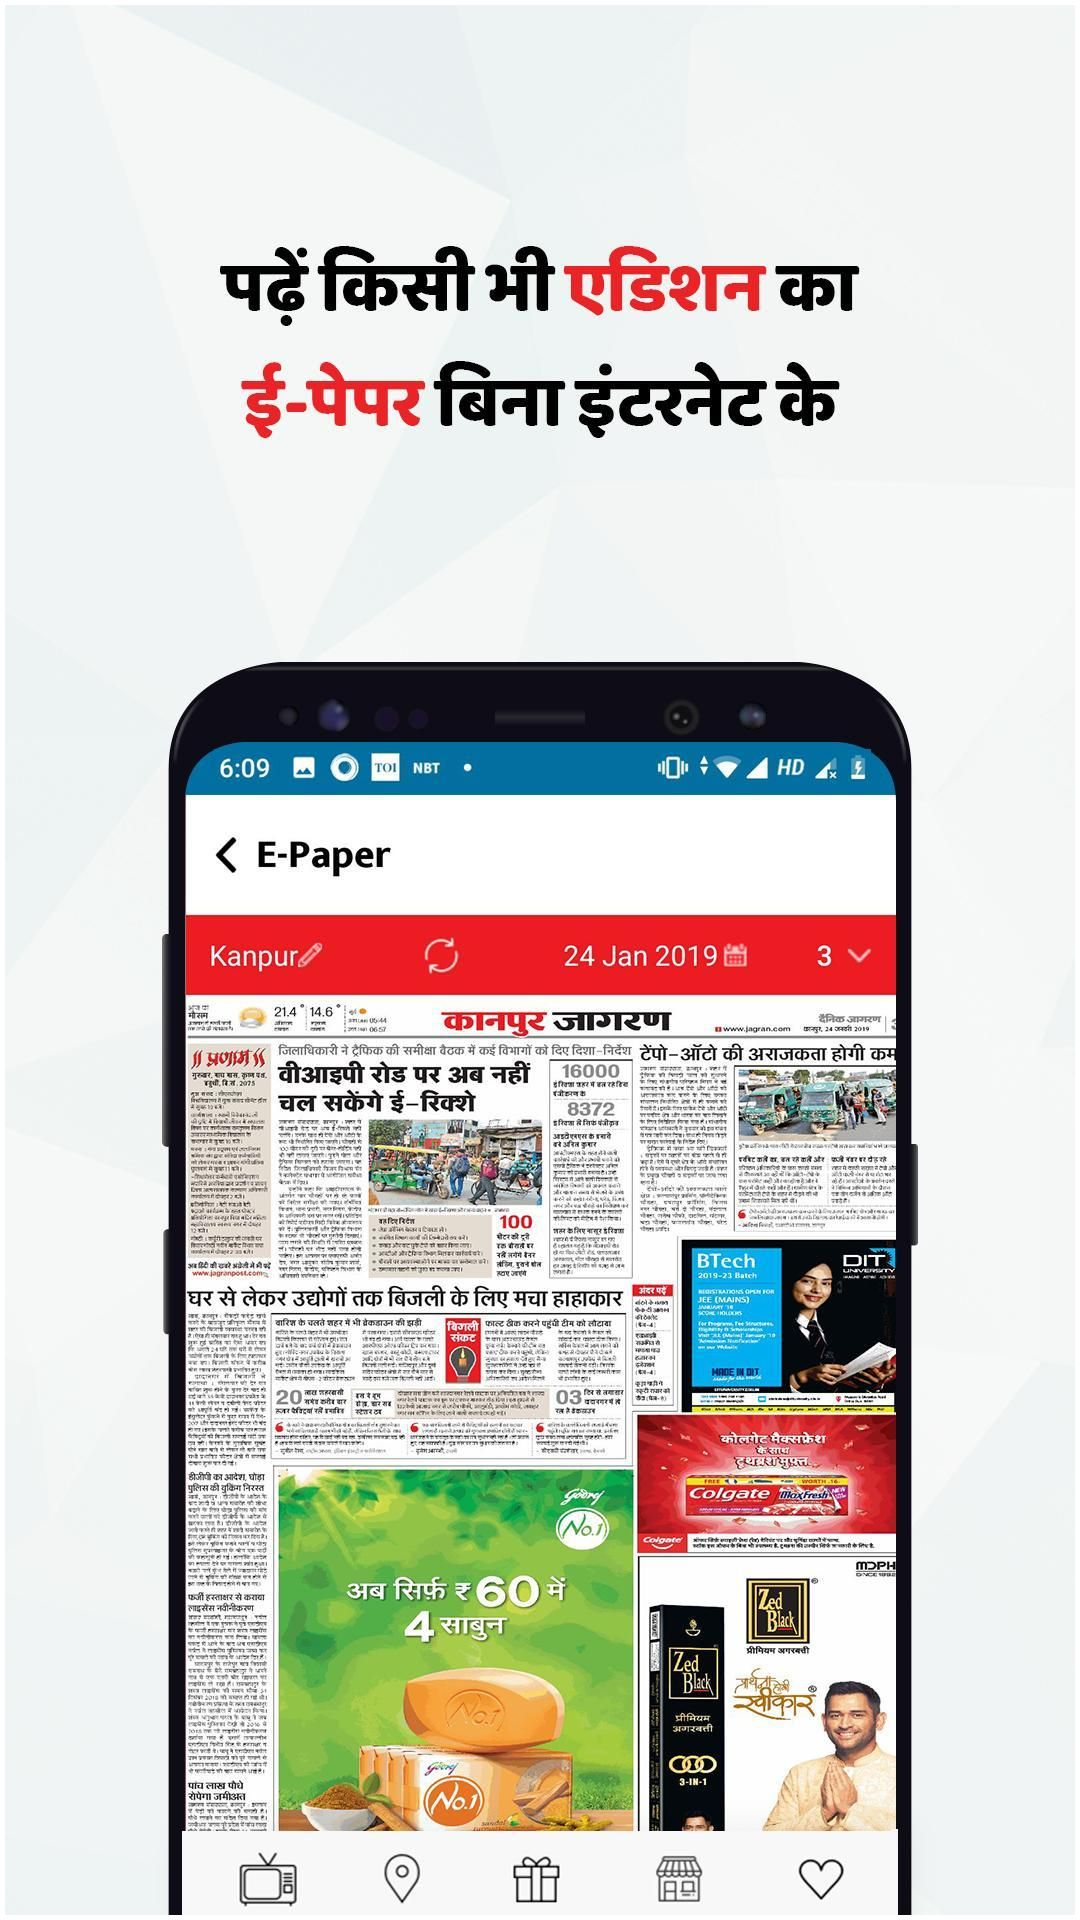 Hindi Magazine Online Free Hindi News Dainik Jagran India News Jagran Epaper for android Apk